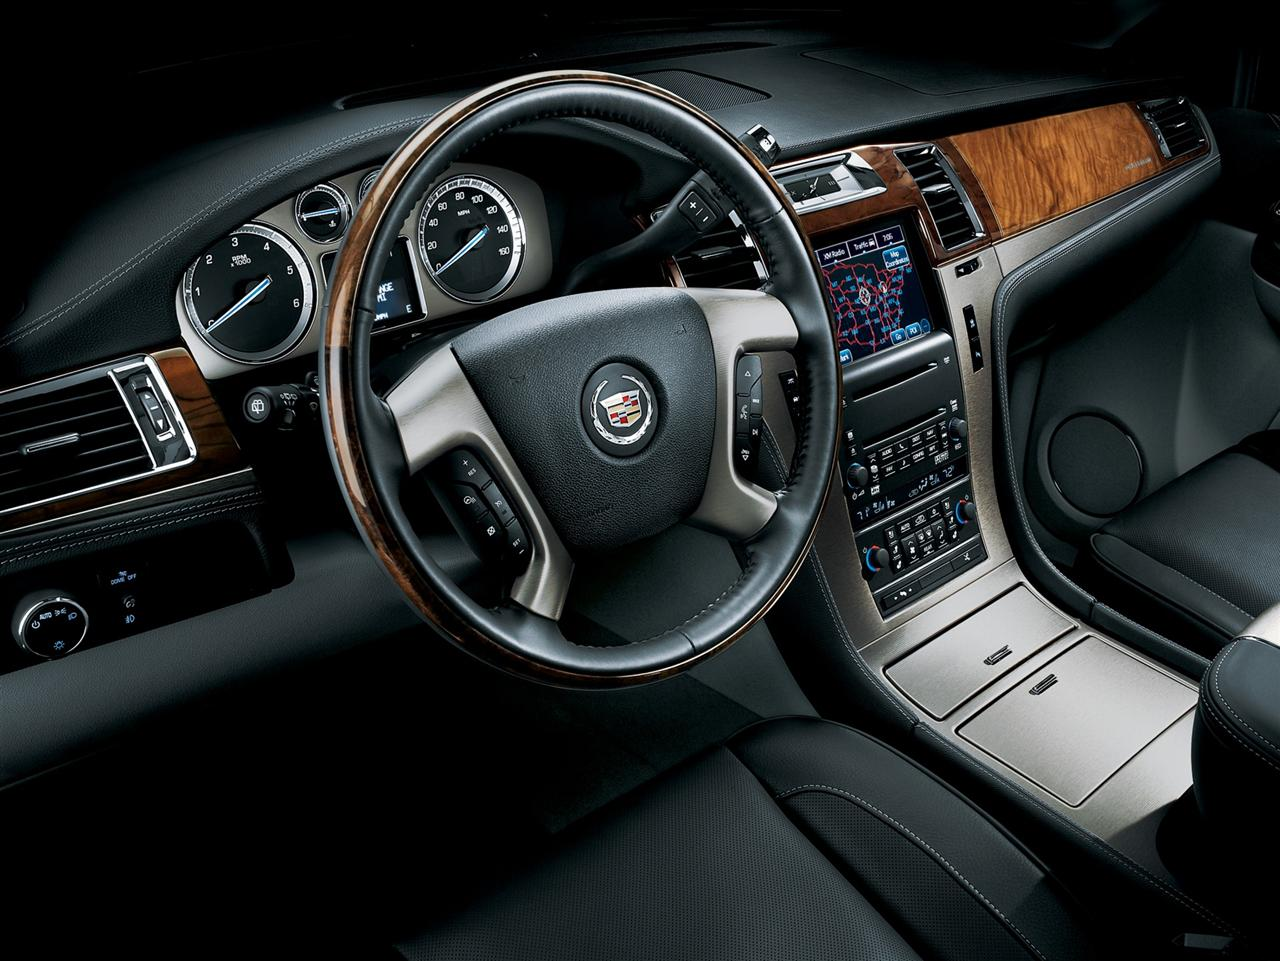 Cadillac Escalade Esv 2012 Interior Wooden Panel Pic Picture Download Tenafly Limousine